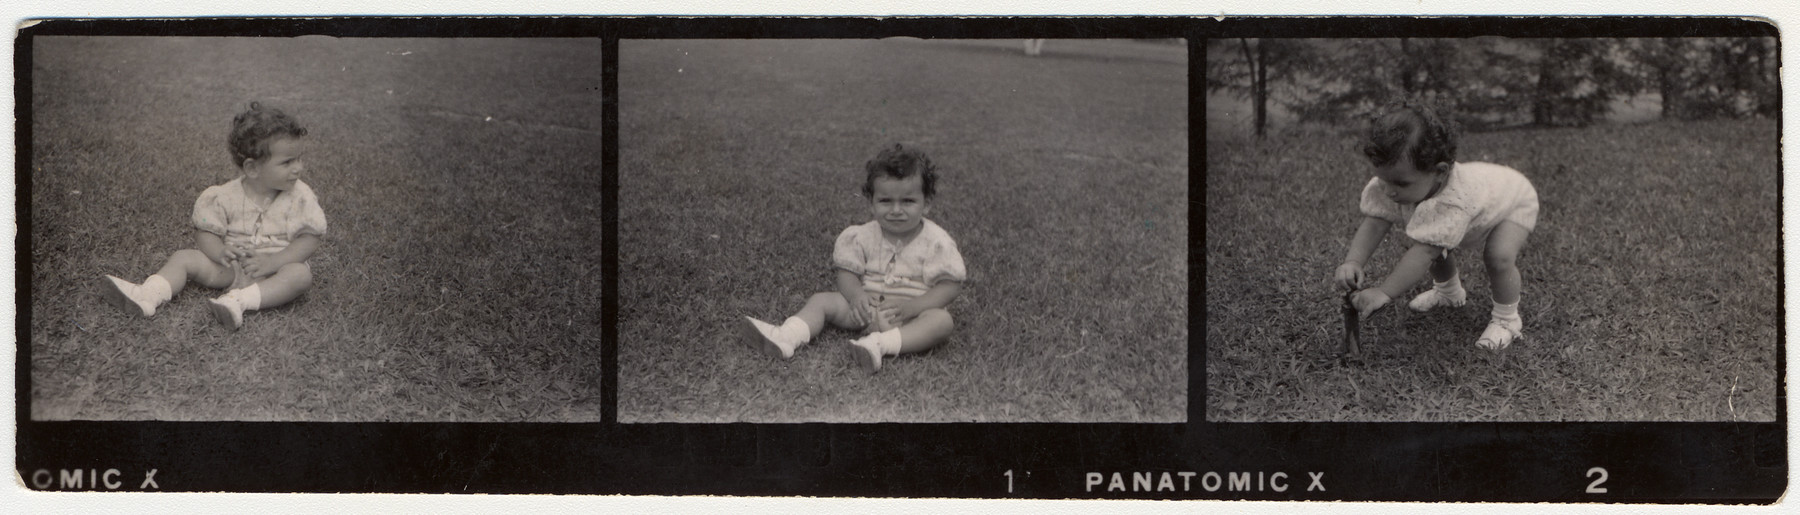 Contact strip representing Margarida Reik (now Margarida Lane Reik de Frankel), the granddaughter of Helene Reik, playing on a field in Teresopolis, Brazil, in April 1940.     The photograph was sent to Helene Reik who used the back as paper for her diary in the Theresienstadt ghetto.